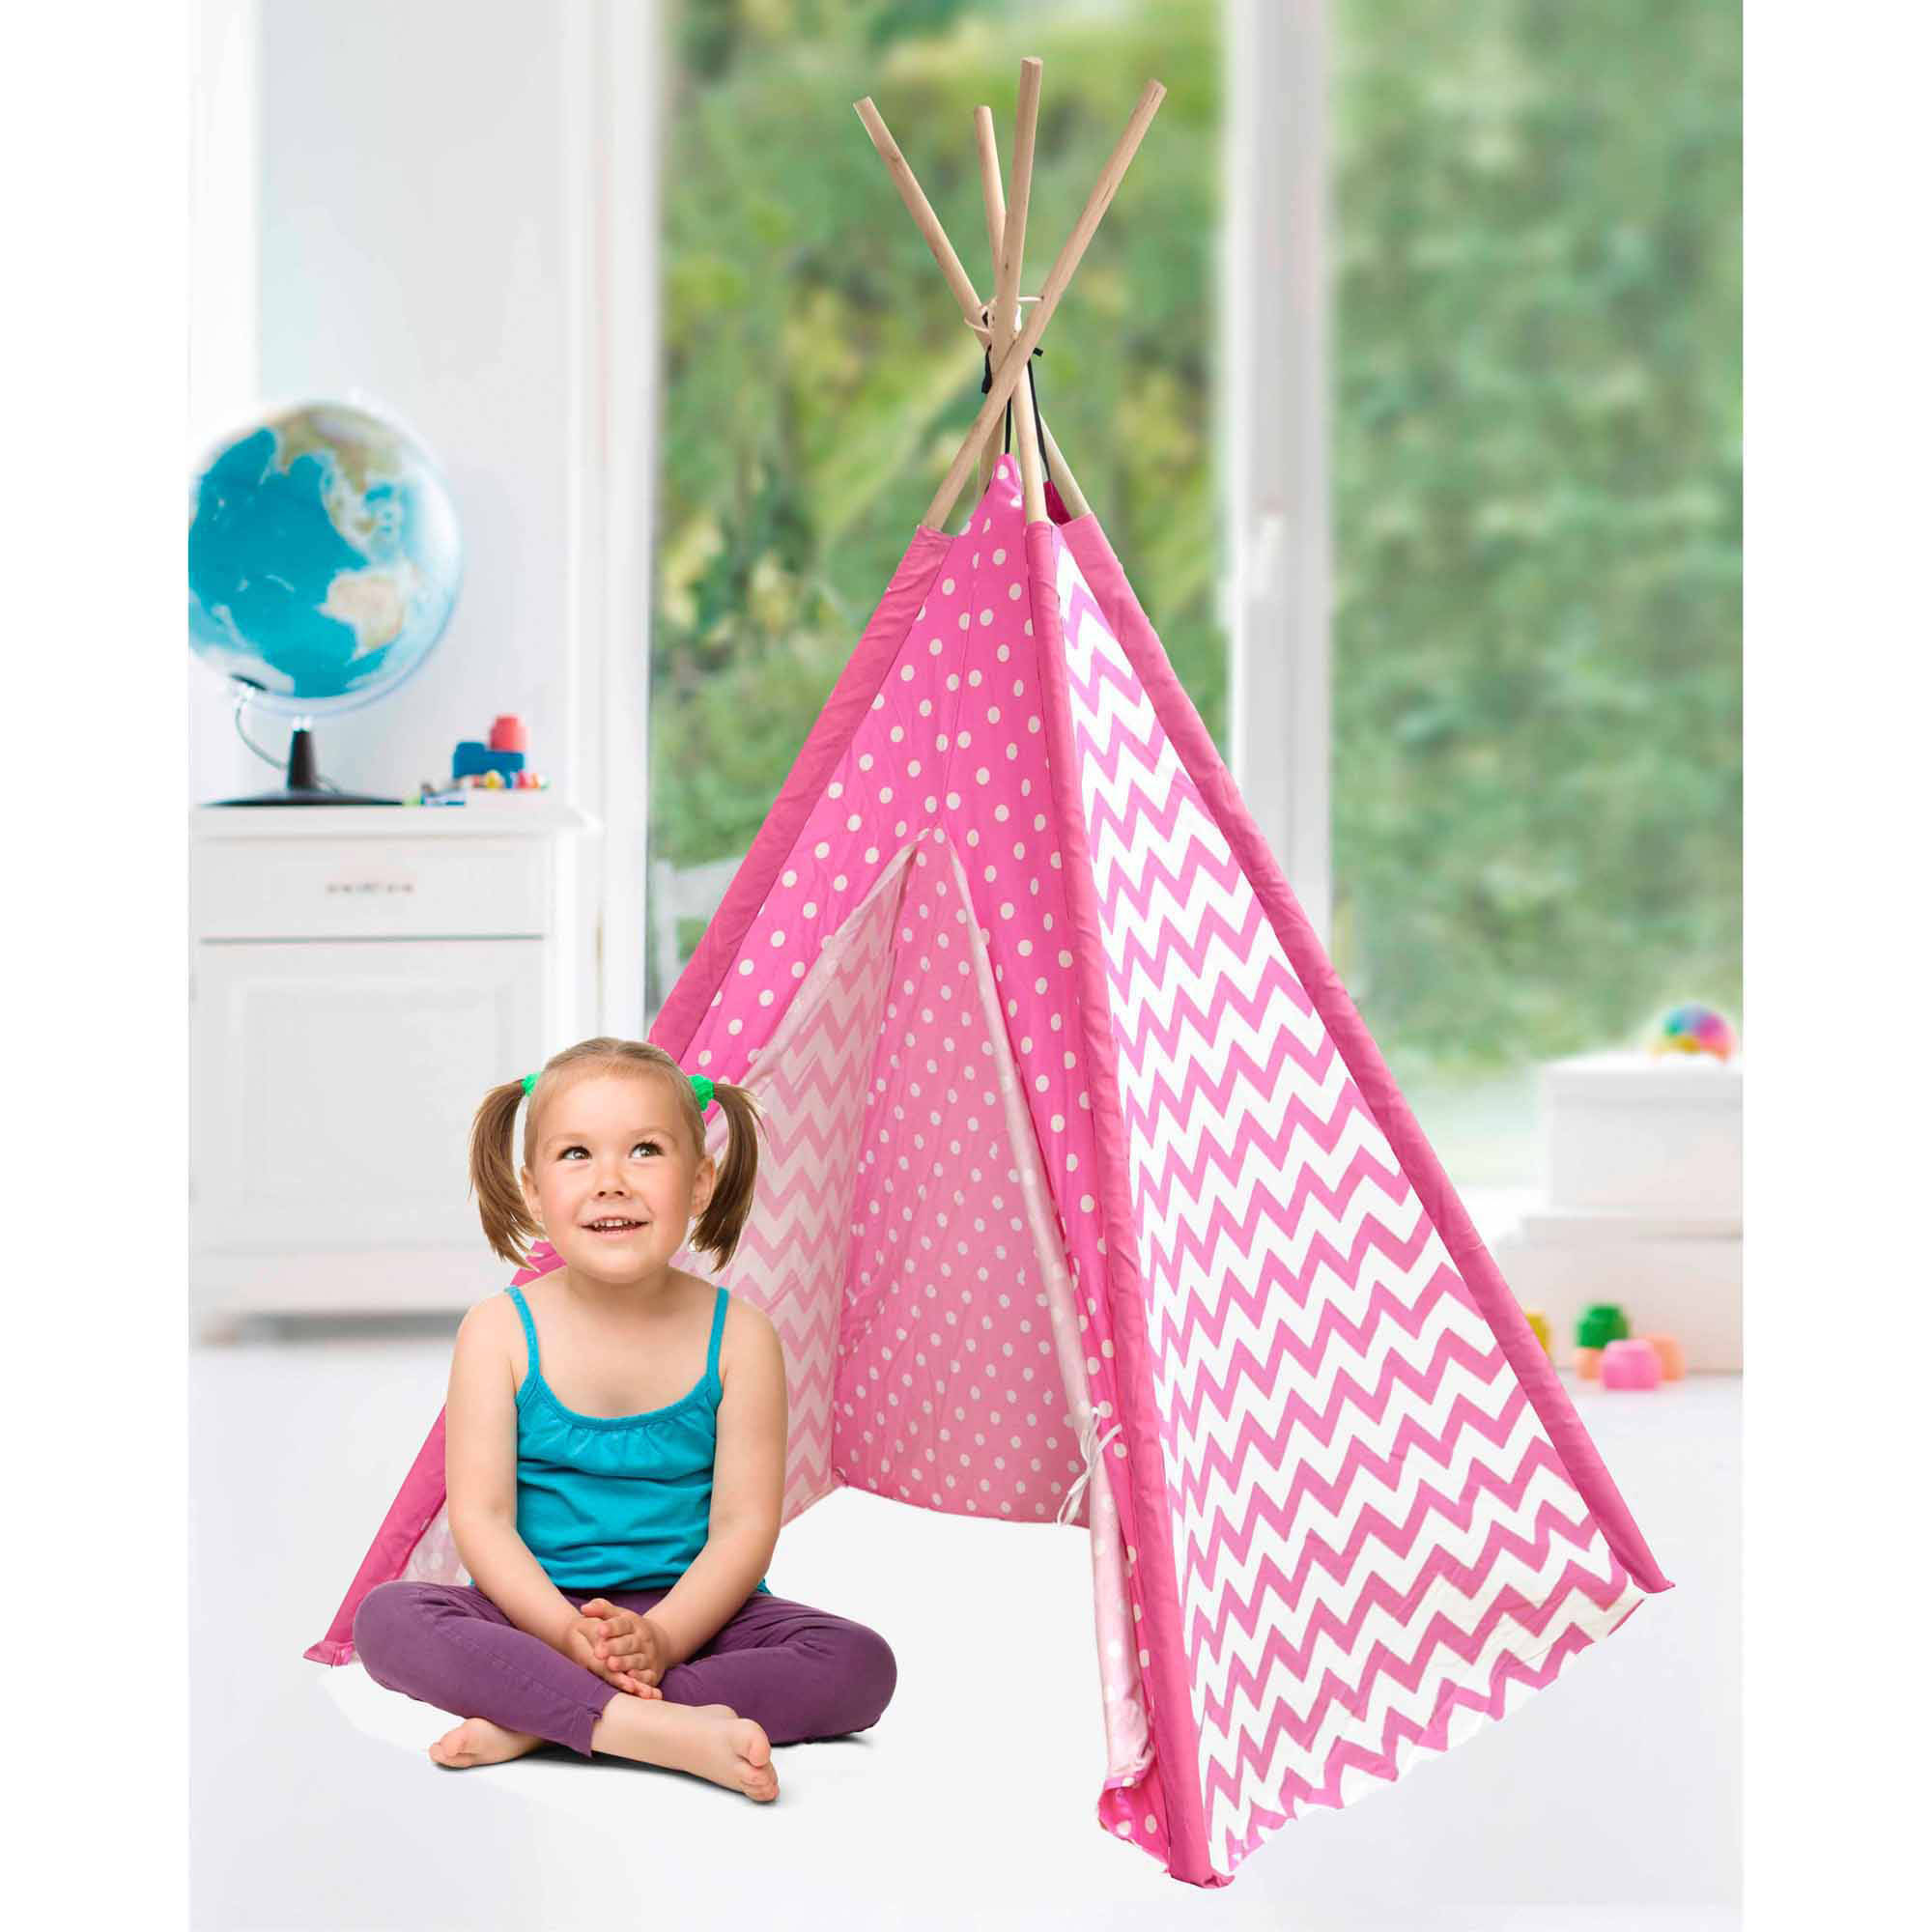 American Kids Awesome Tee-Pee Tent Pink Chevron Dot  sc 1 st  Walmart & American Kids Awesome Tee-Pee Tent Pink Chevron Dot - Walmart.com